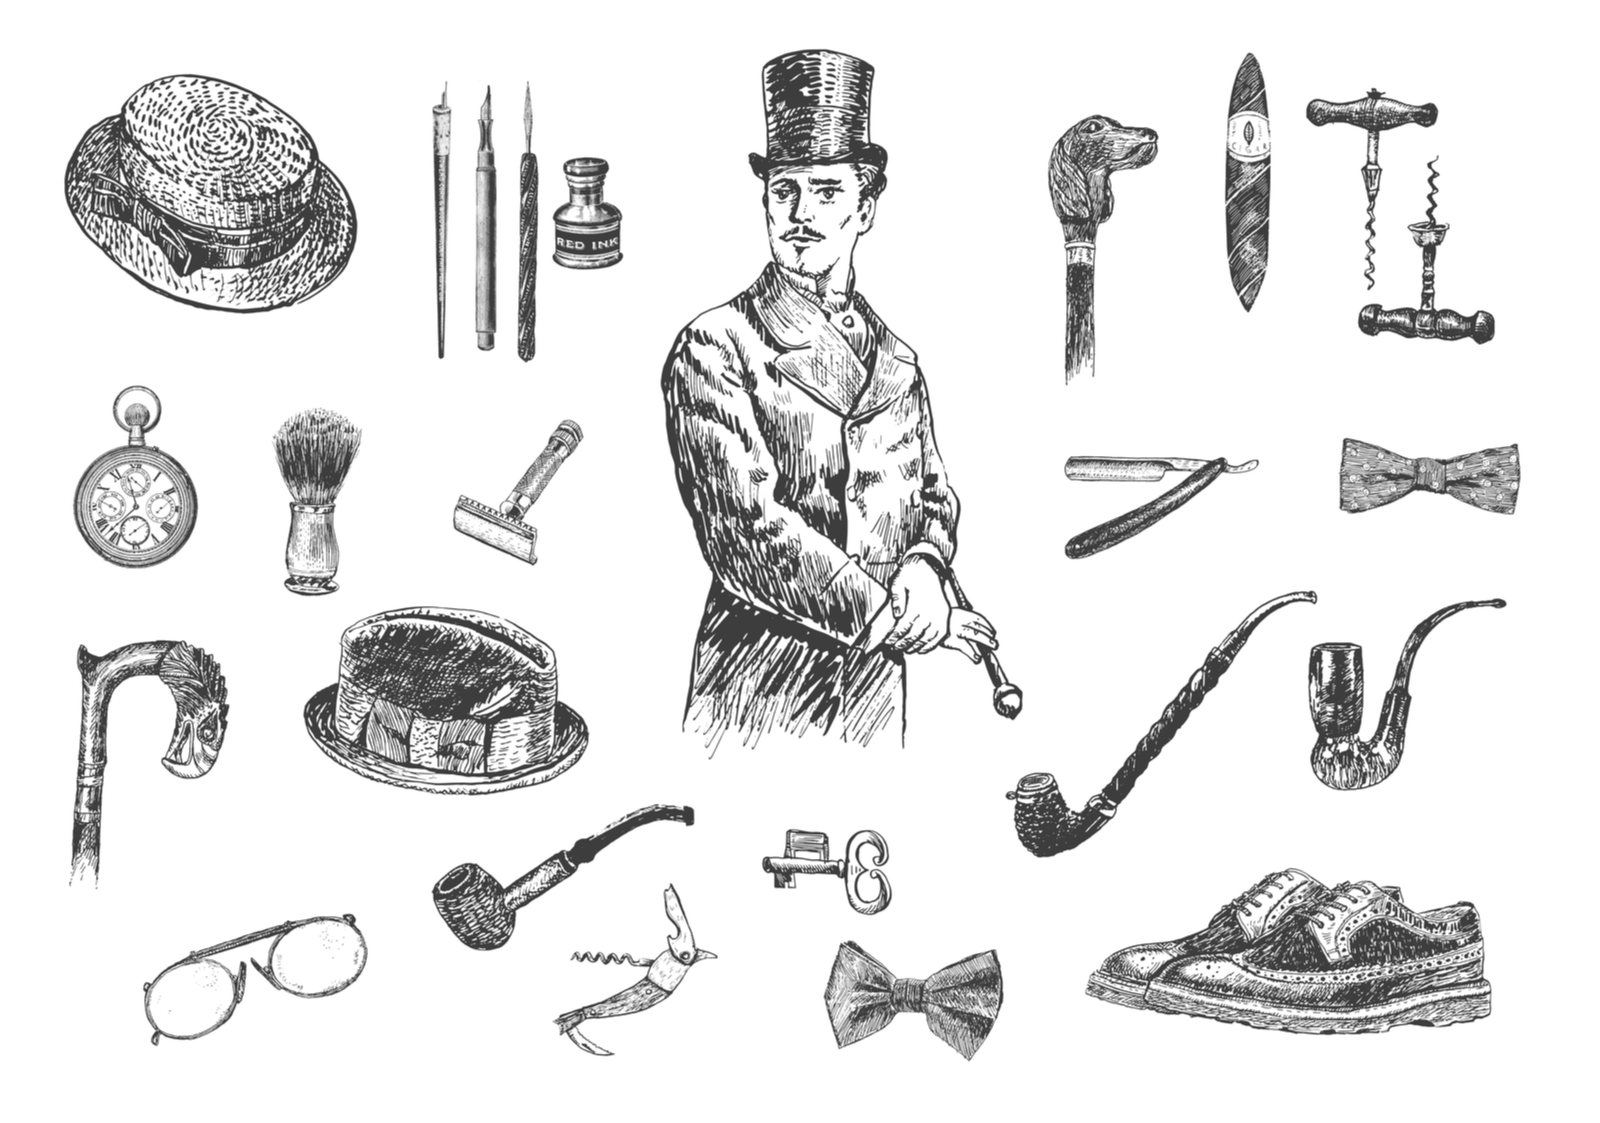 Victorian Era Collection, Gentleman's vintage accessories doodle collection. Hand drawn men illustrations set. Gentlemen in a tuxedo and a top hat. Vintage vector engraving style